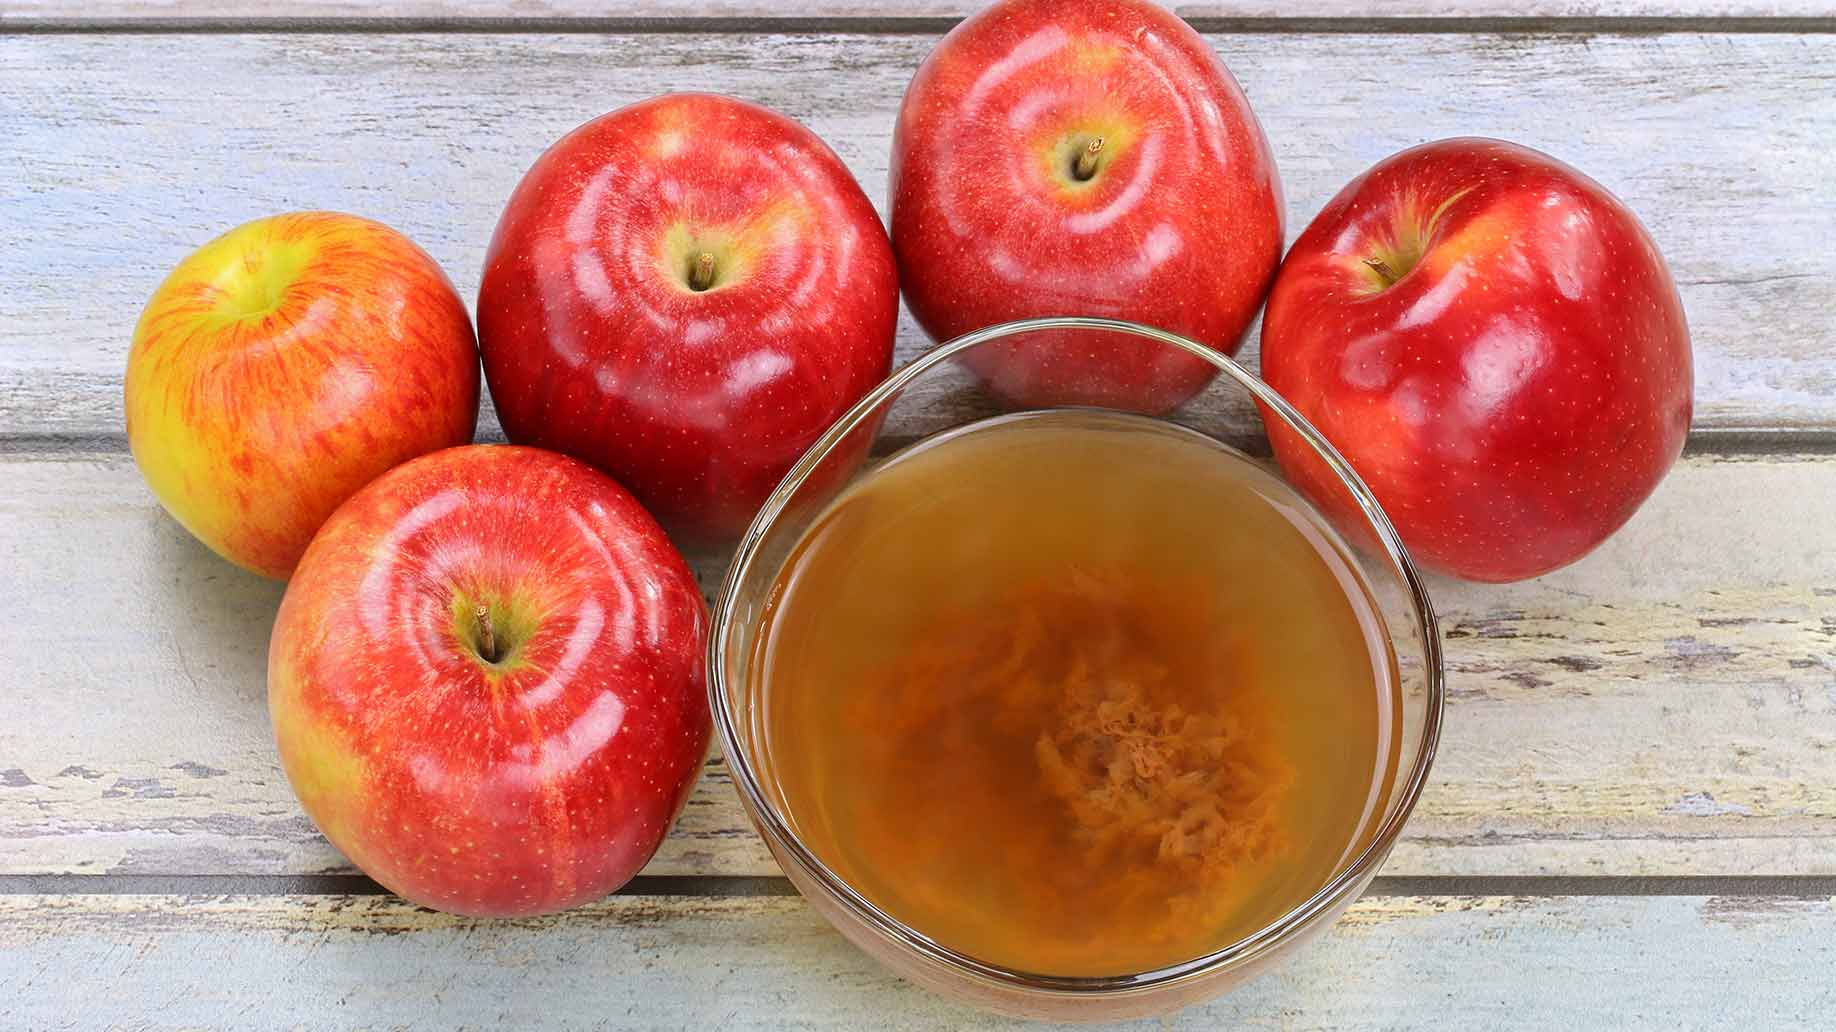 apple cider vinegar with mother organic for bad breath halitosis get rid of naturally